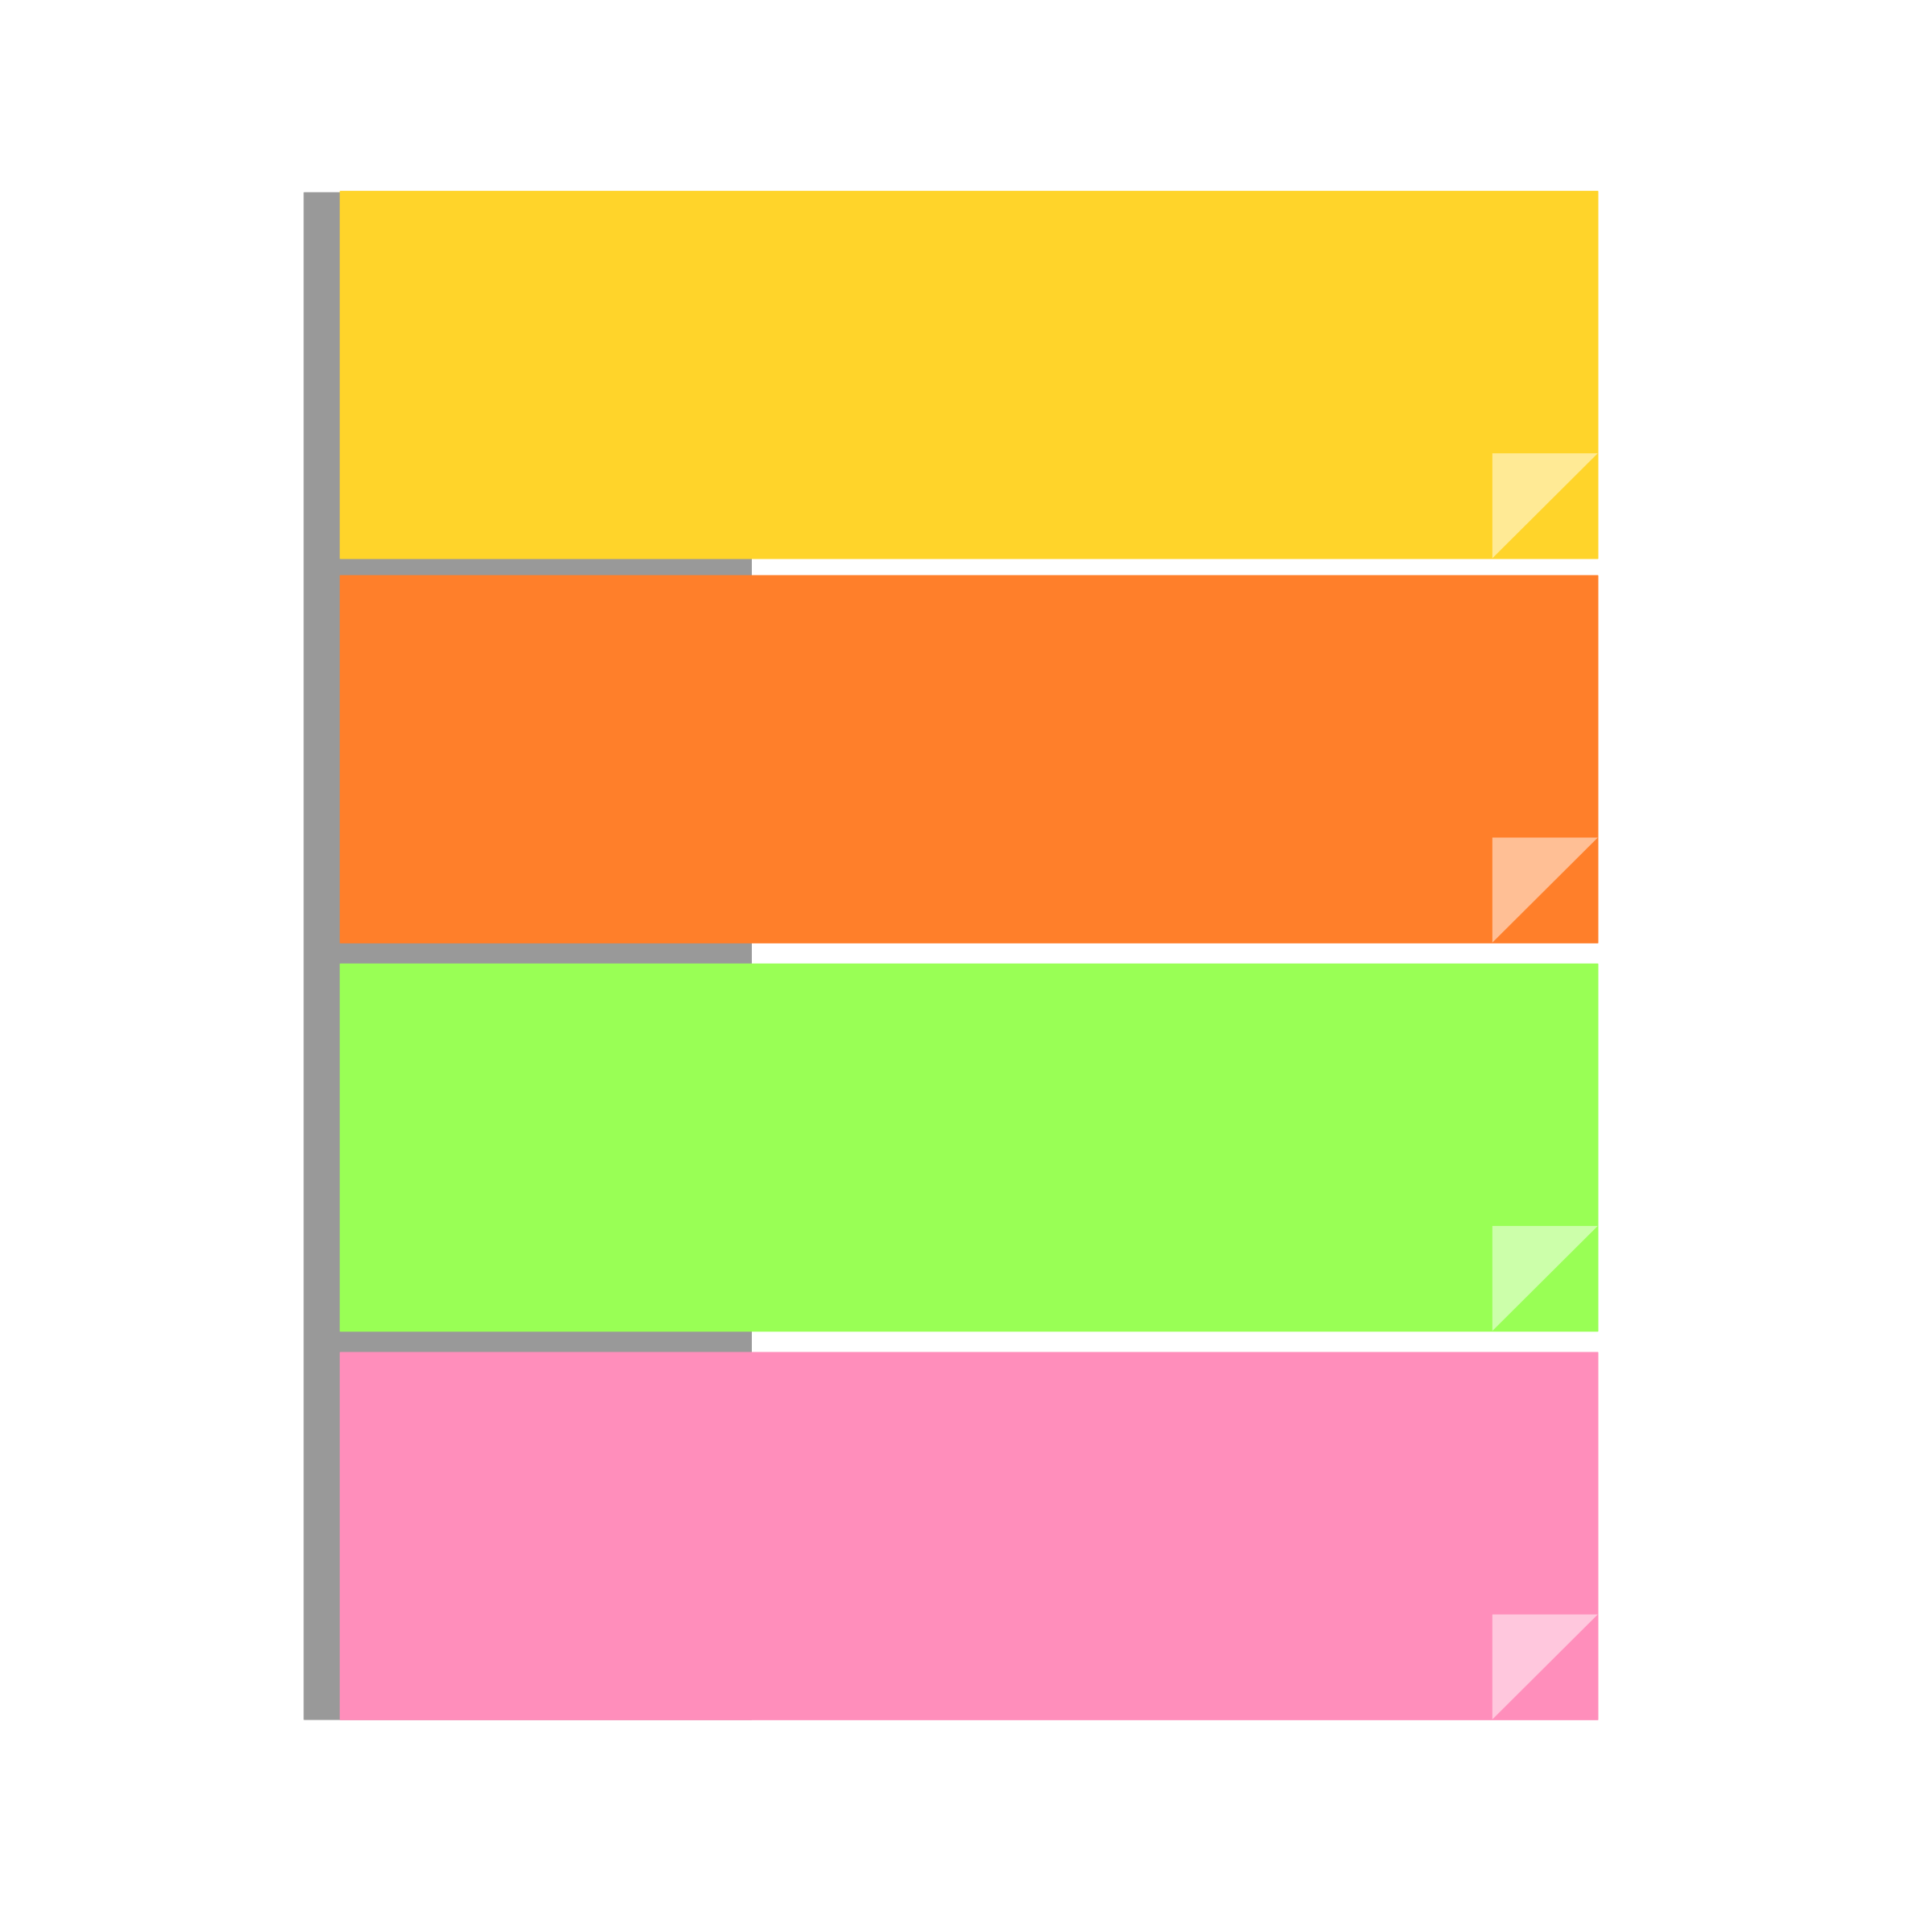 Colorful post it notes png. Clipart office stationery sticky